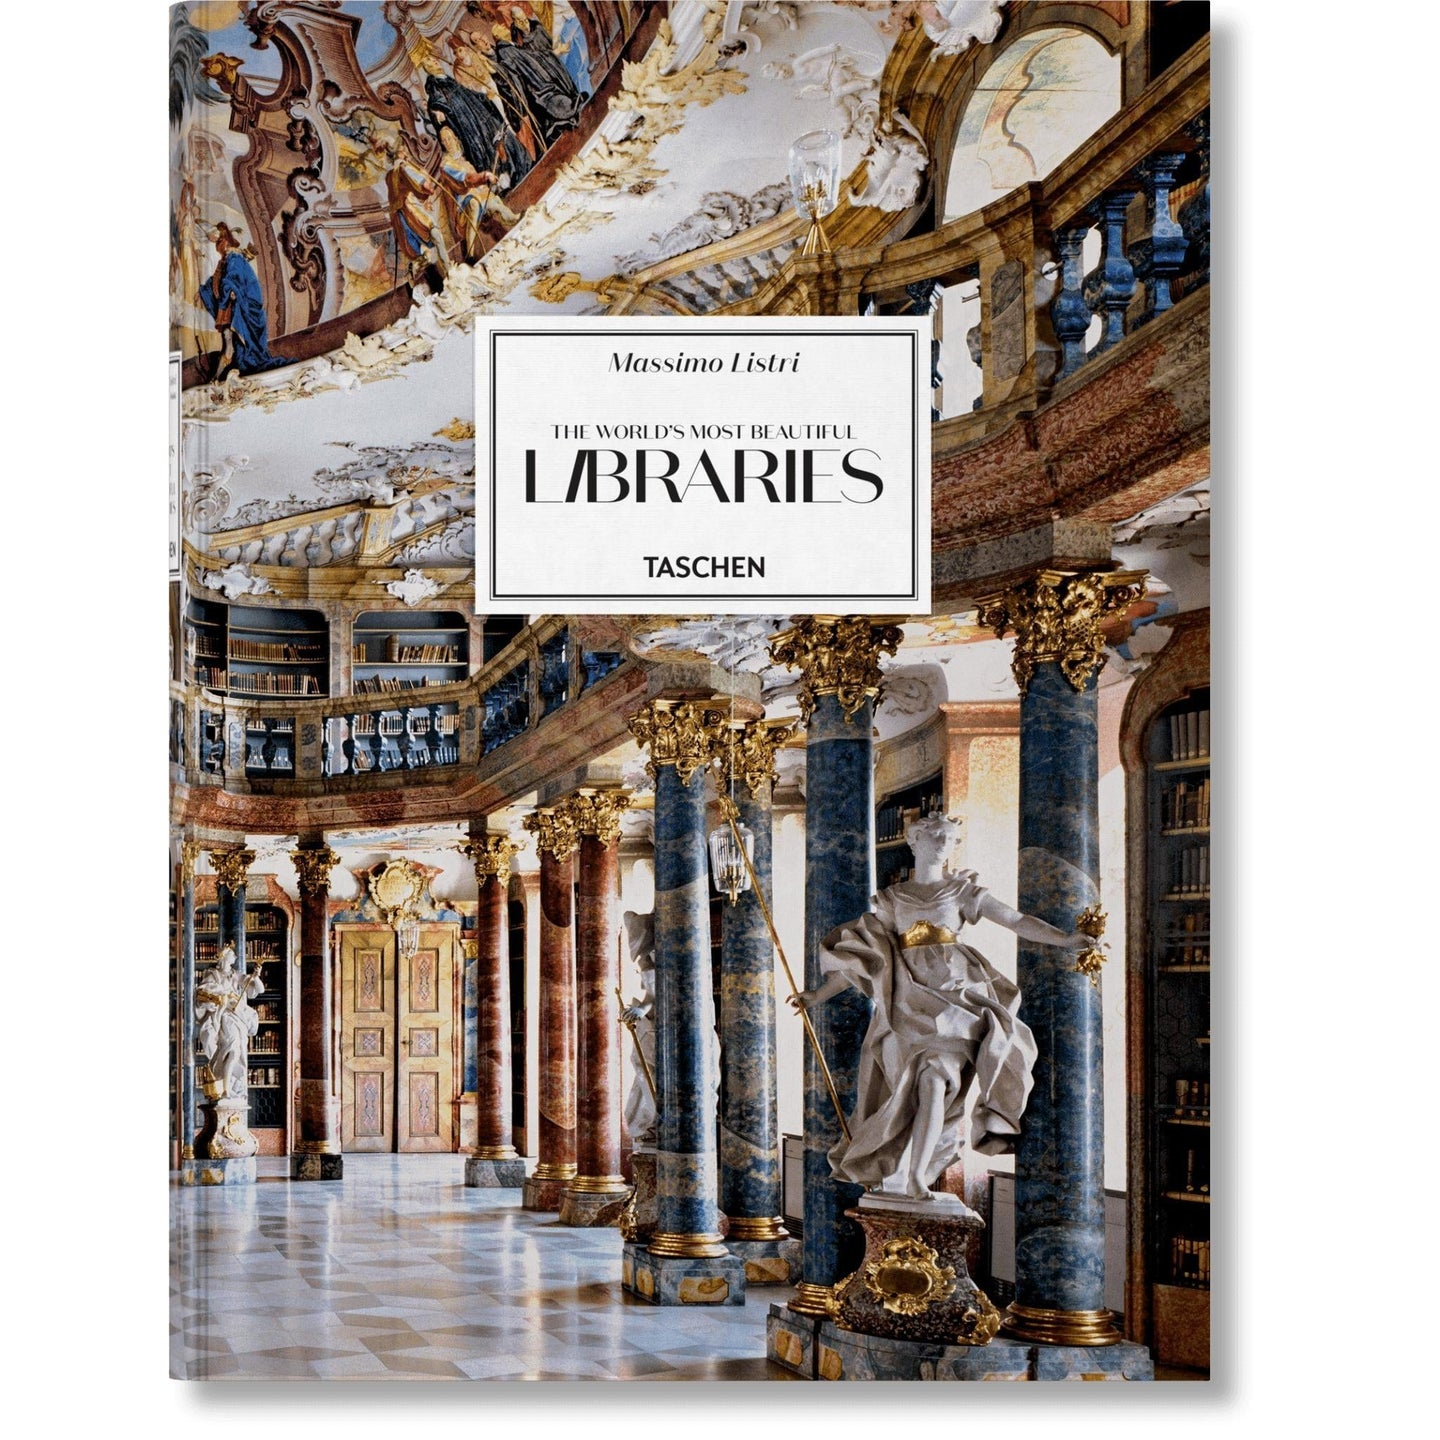 Taschen Massimo Listri. The World's Most Beautiful Libraries / Neighborhood Goods